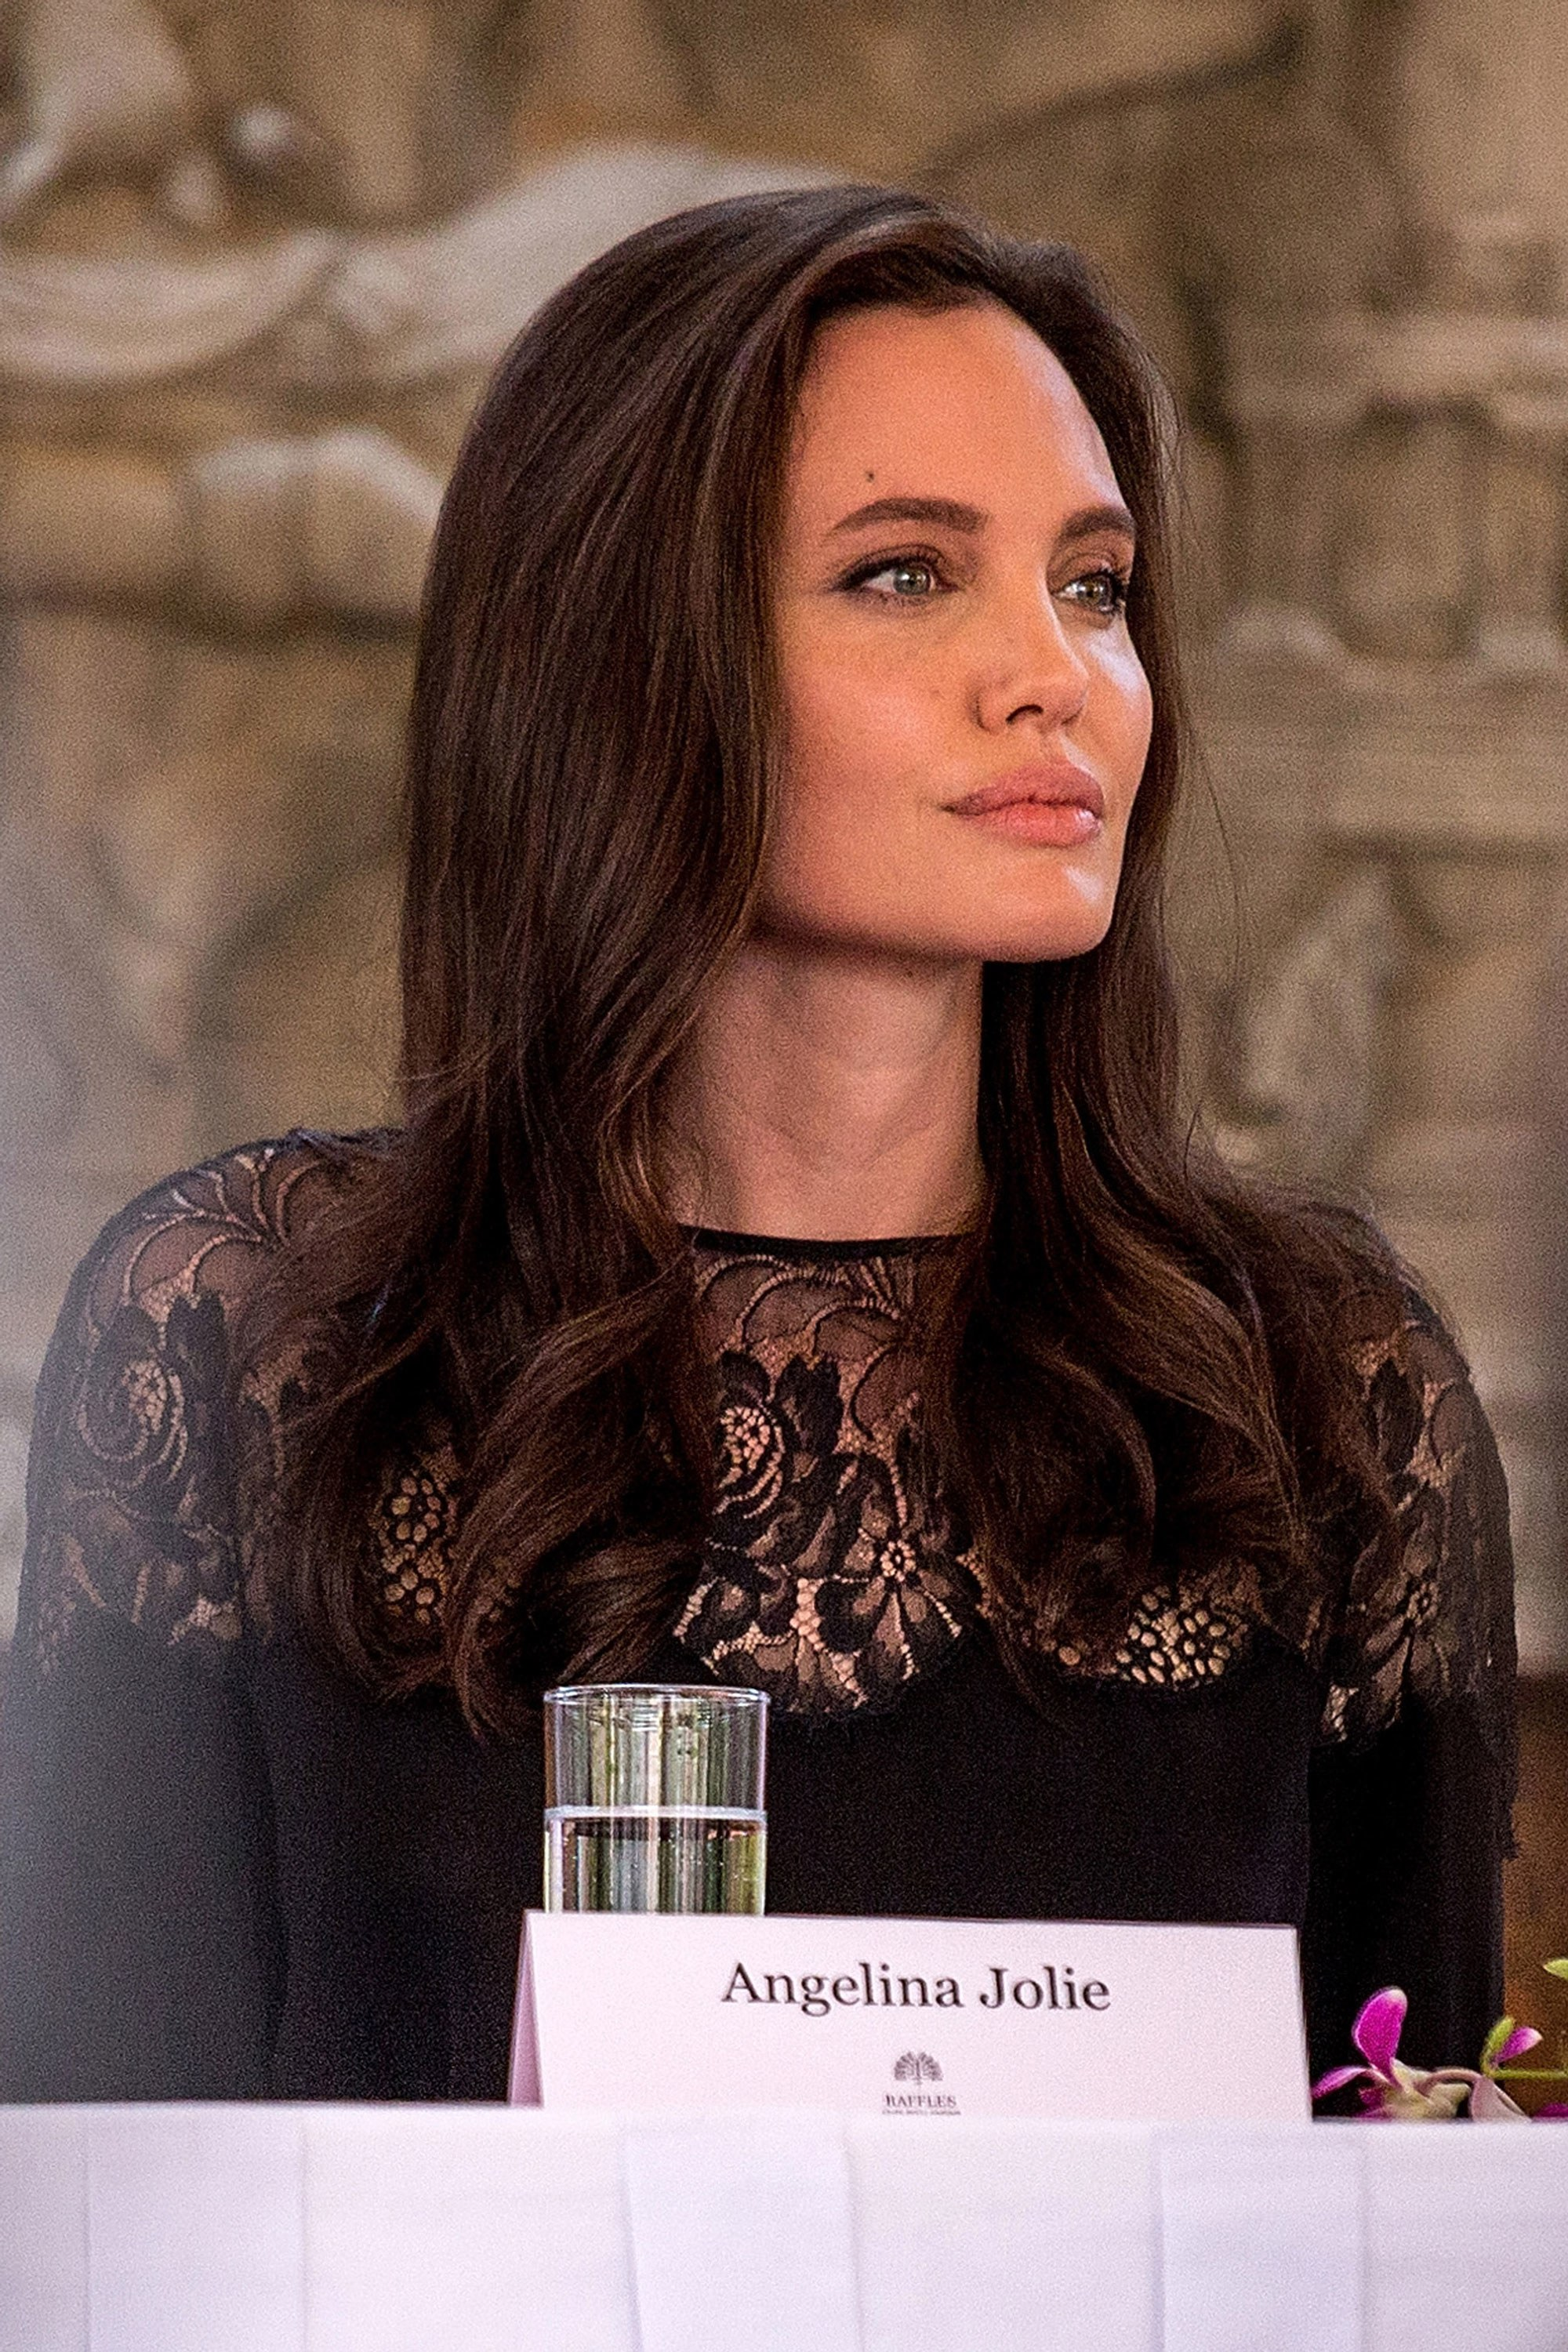 Angelina Jolie brunette hair colors [19659018] Angelina Jolie </ figcaption> </ figure></p><div class='code-block code-block-1' style='margin: 8px auto; text-align: center; display: block; clear: both;'> <!--ads/280.txt--></div>  <p> If you're thinking about highlights for your dark hair, you're here to see caramel and honey highlights.  In fact, these are perhaps the best shades for dark hair, be it dark brown or real brunette.  These highlights transform your hair color into a creamy espresso and beautify your face, giving your look a mysterious look.<br />  </ P></p> <h2> <span> Delicate brown shades of brown </ span> </ h2></p><div class='code-block code-block-1' style='margin: 8px auto; text-align: center; display: block; clear: both;'> <!--ads/280.txt--></div>  <figure id =